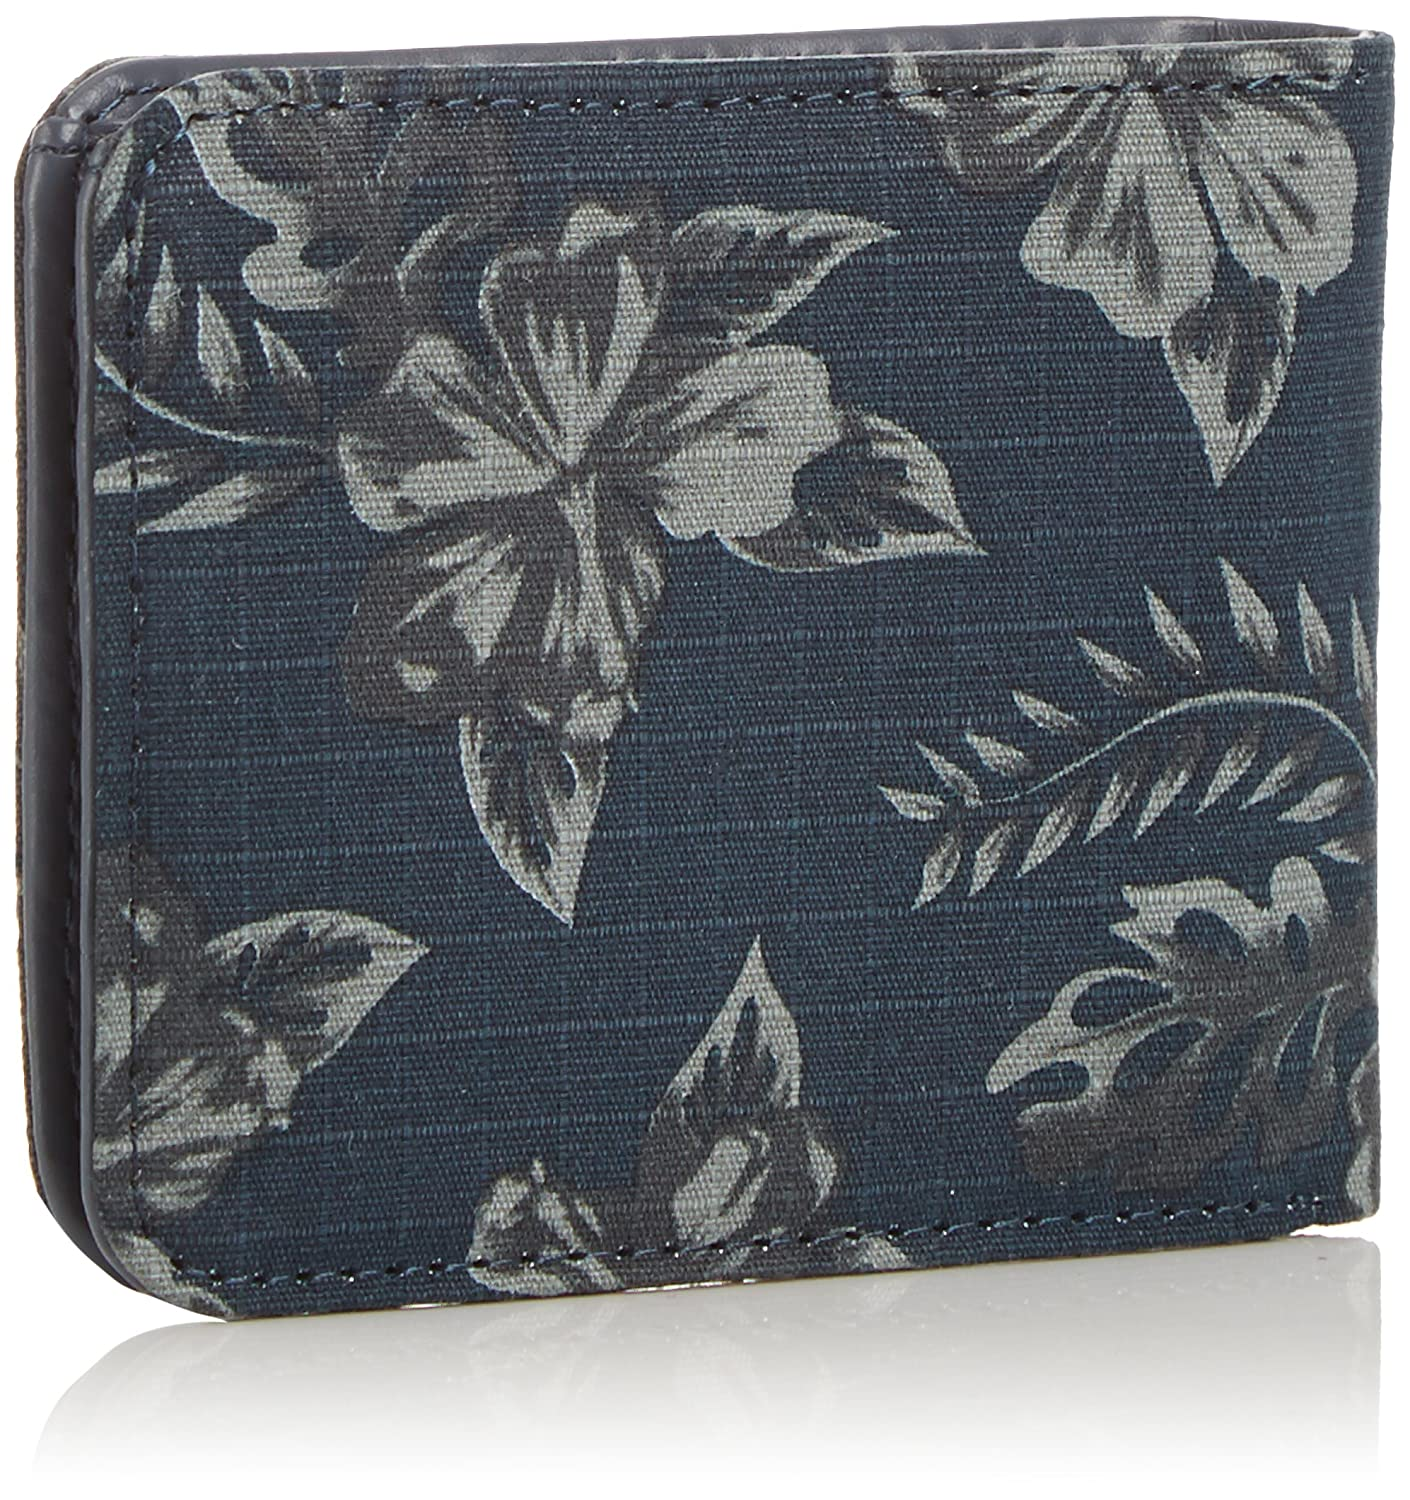 DCS Jungle, Cartera para Hombre, Washed Navy, Medium: Amazon.es: Zapatos y complementos